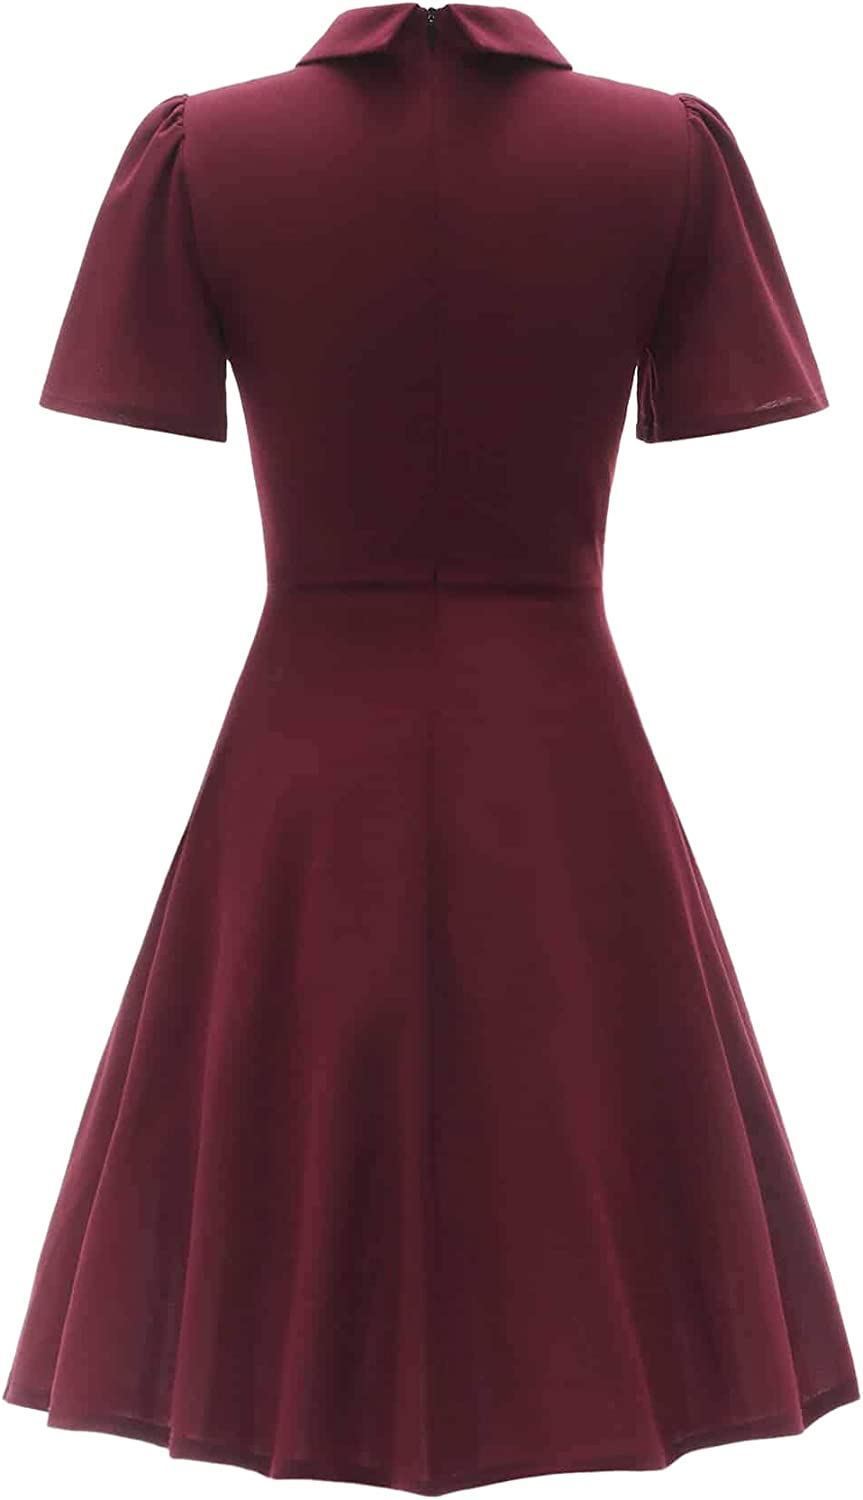 Romwe Womens Petite Vintage 1950s Retro Collared Long Sleeve Fit and Flare Swing Party Dress